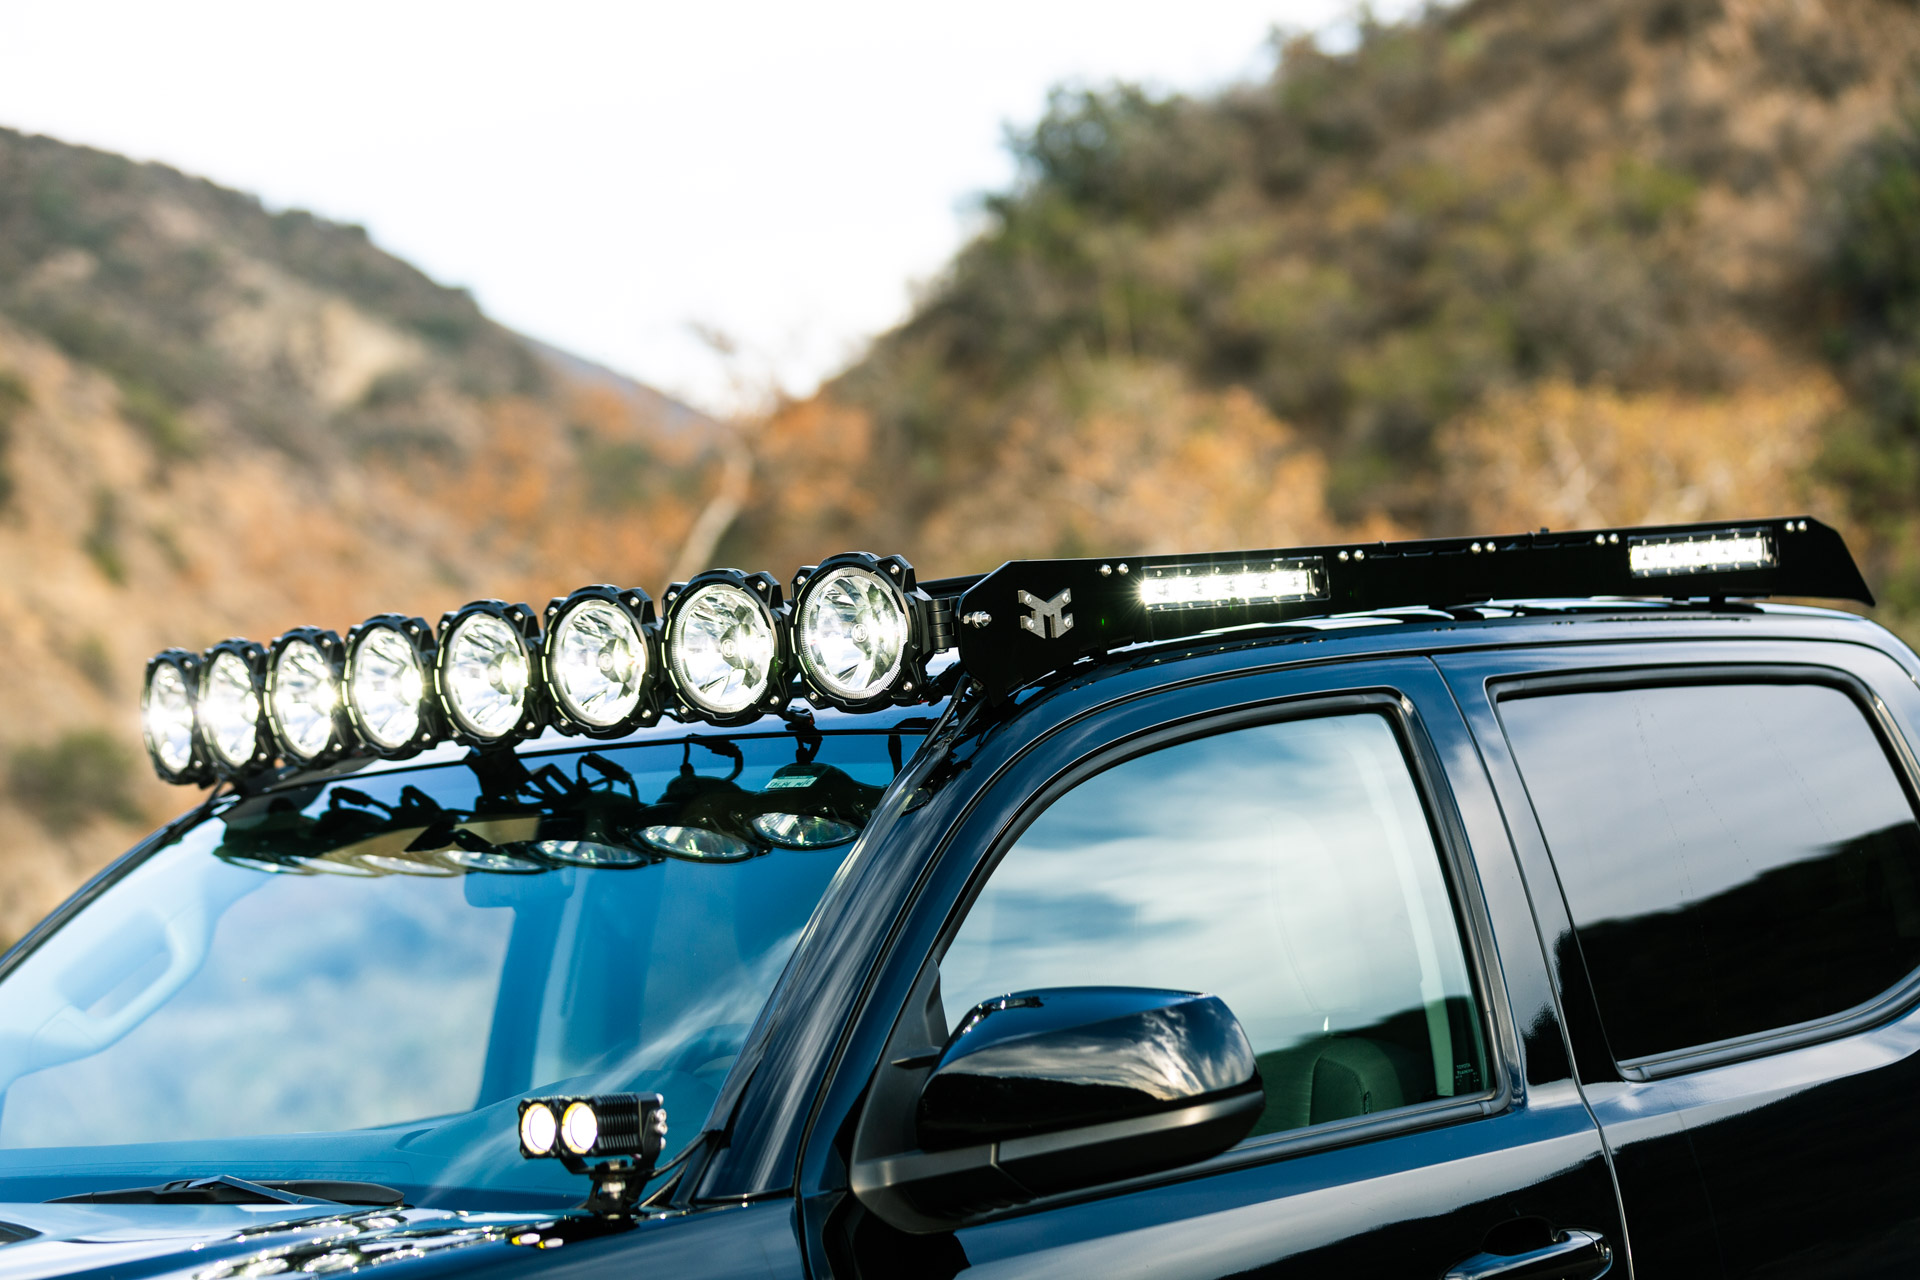 Black KC Toyota Tacoma with Roof Rack & Integrated Lighting - Image #02